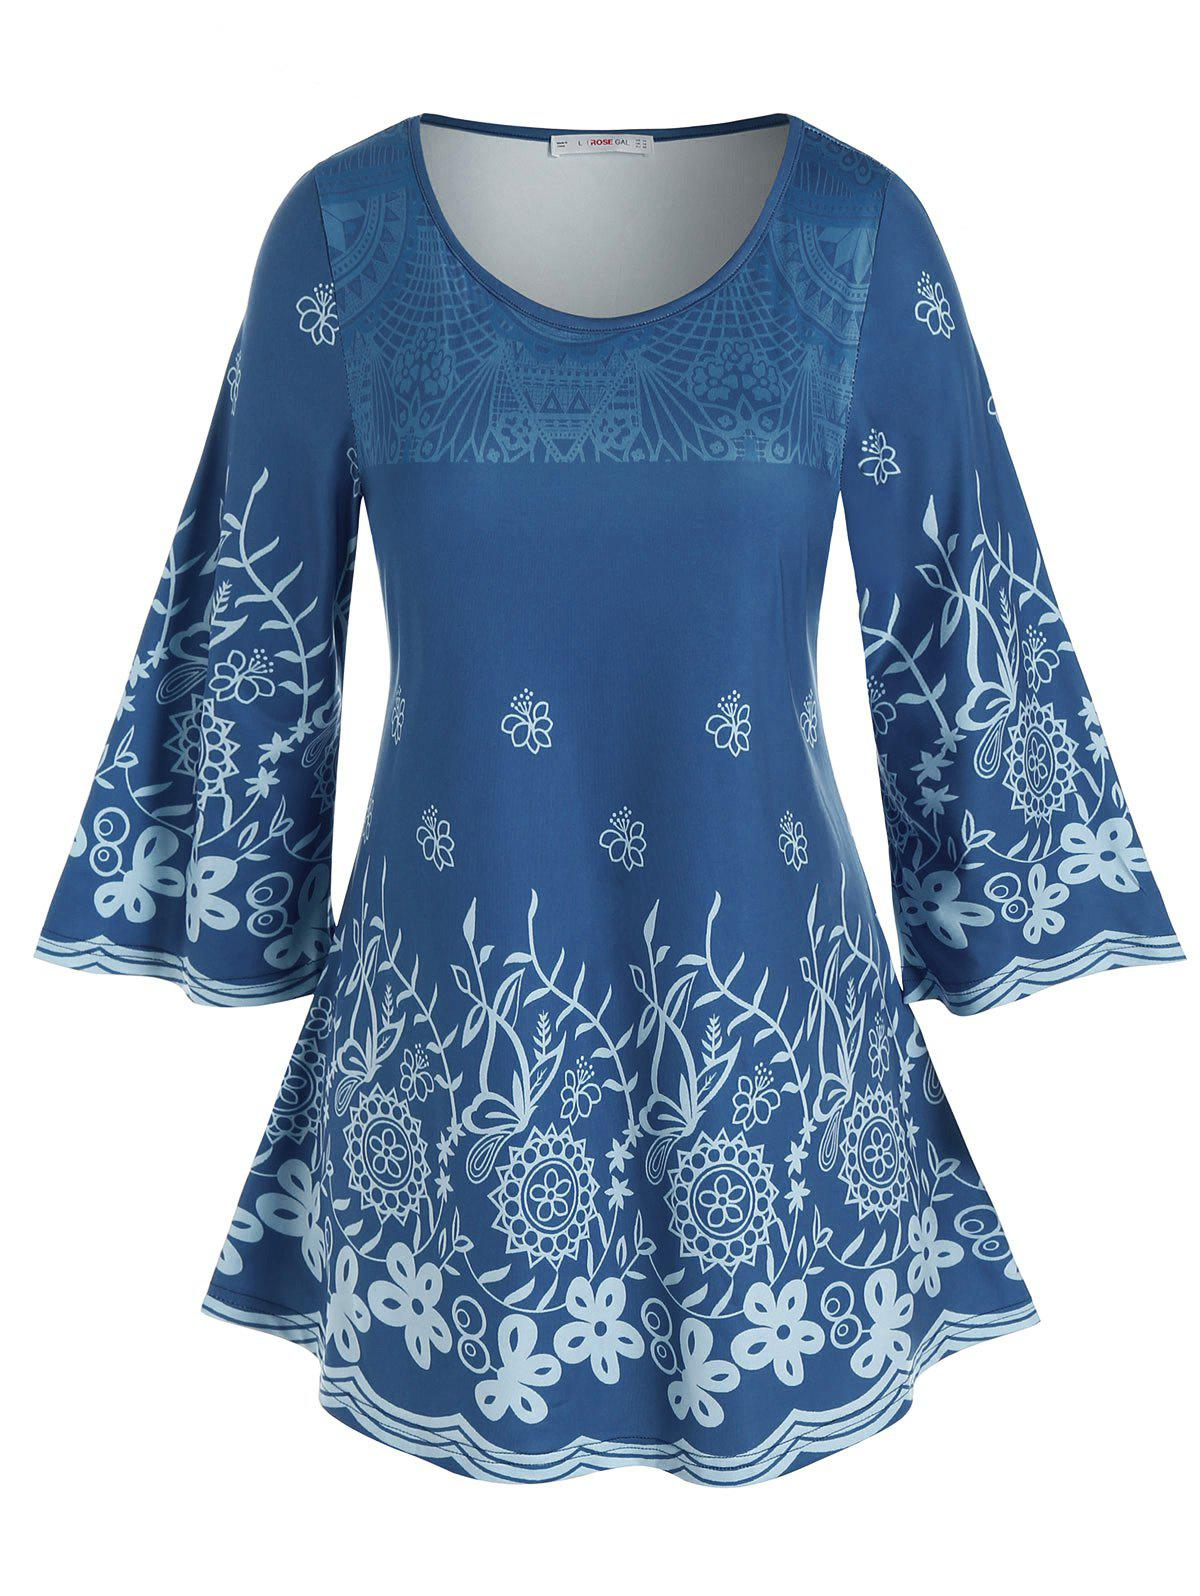 Plus Size Flower Patterned Casual Tunic Tee - BLUE 5X